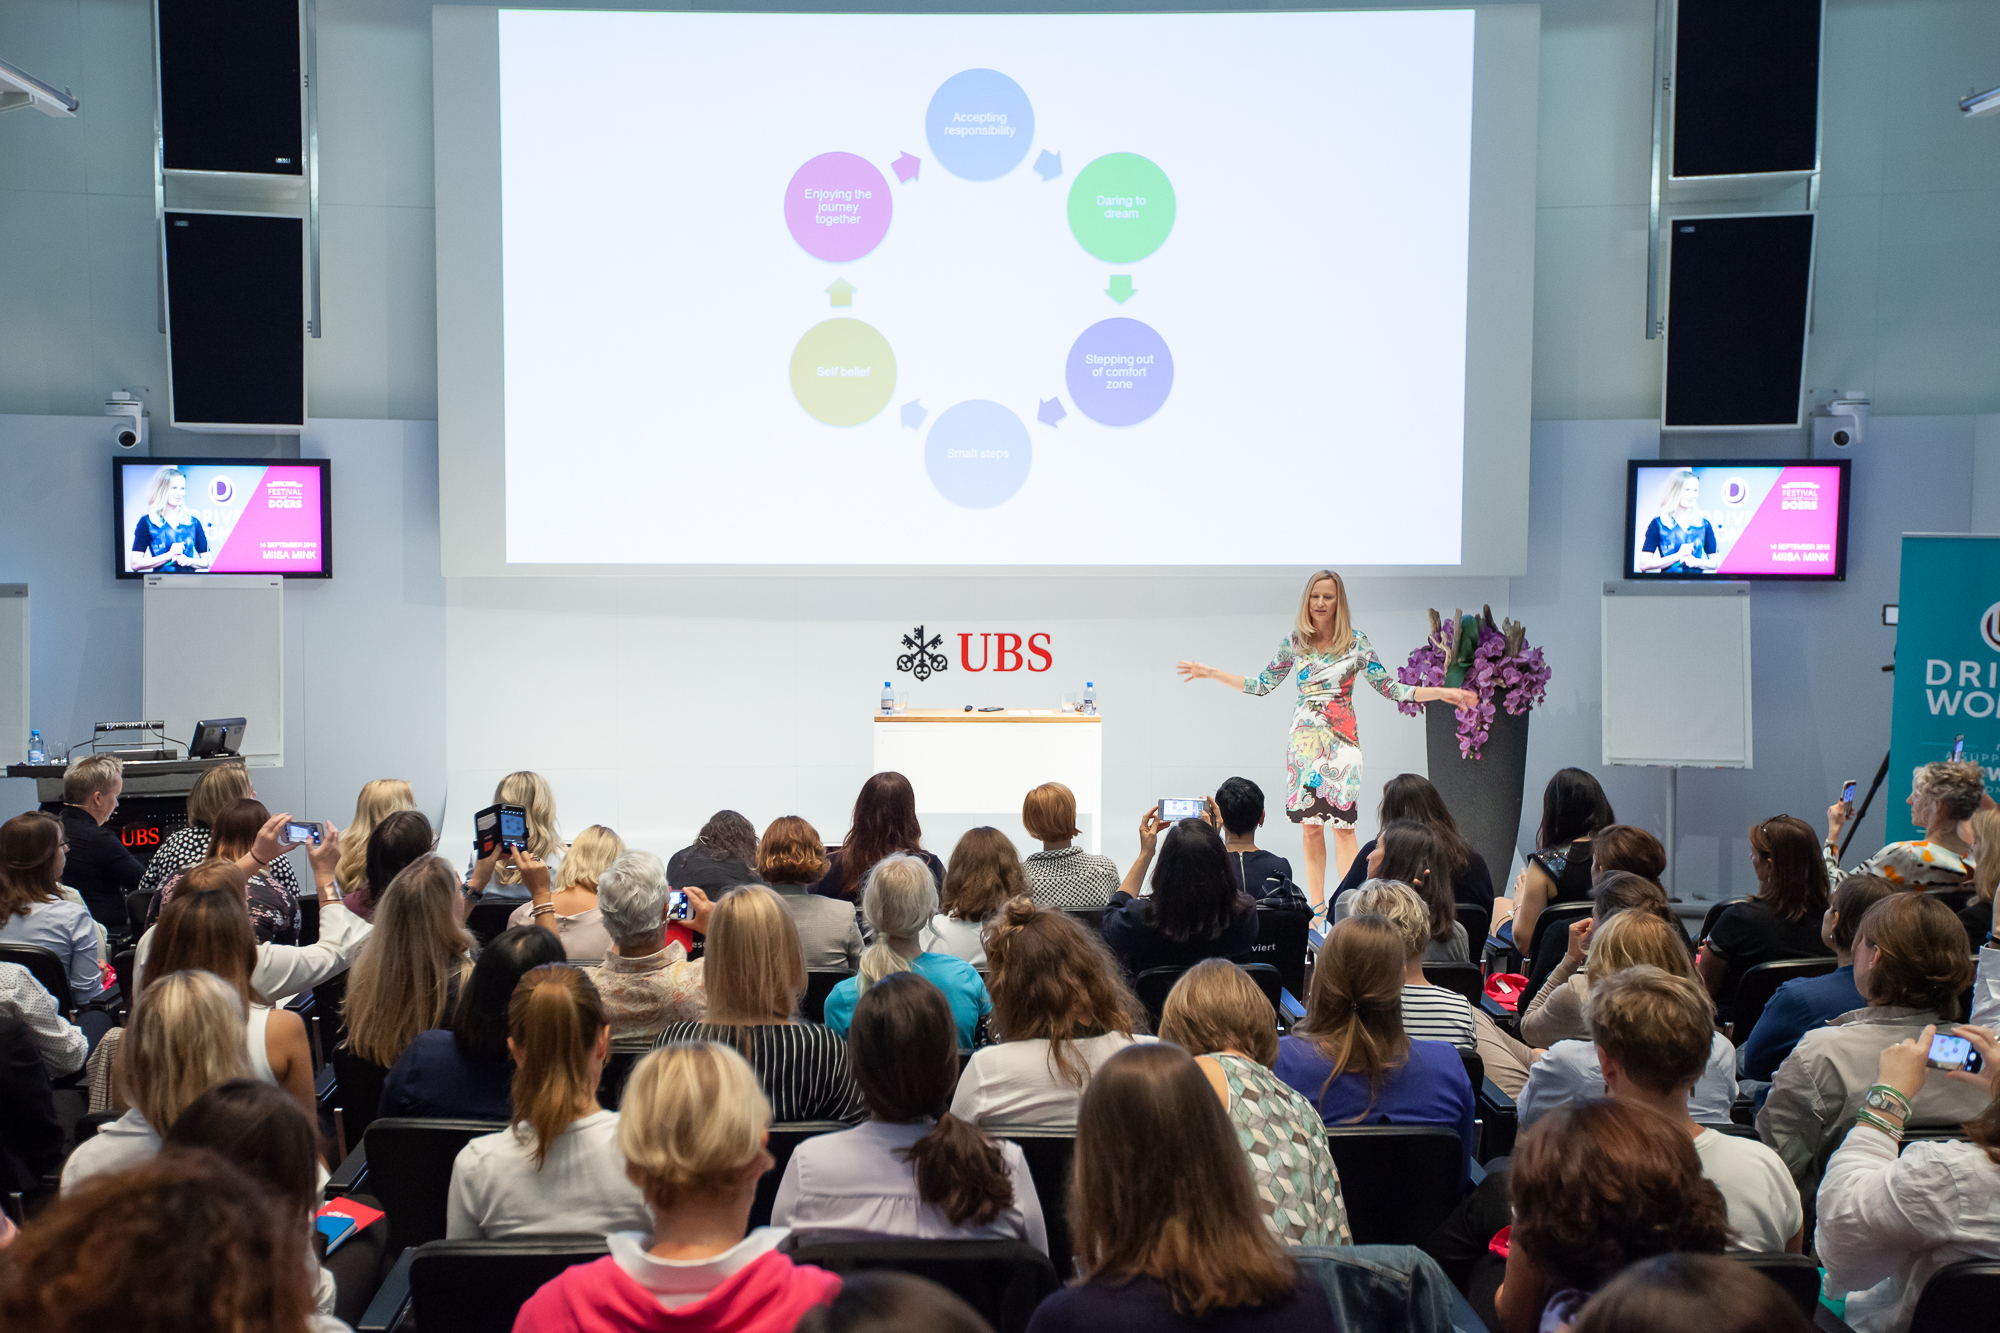 Festival of Doers Zürich 2018 at UBS